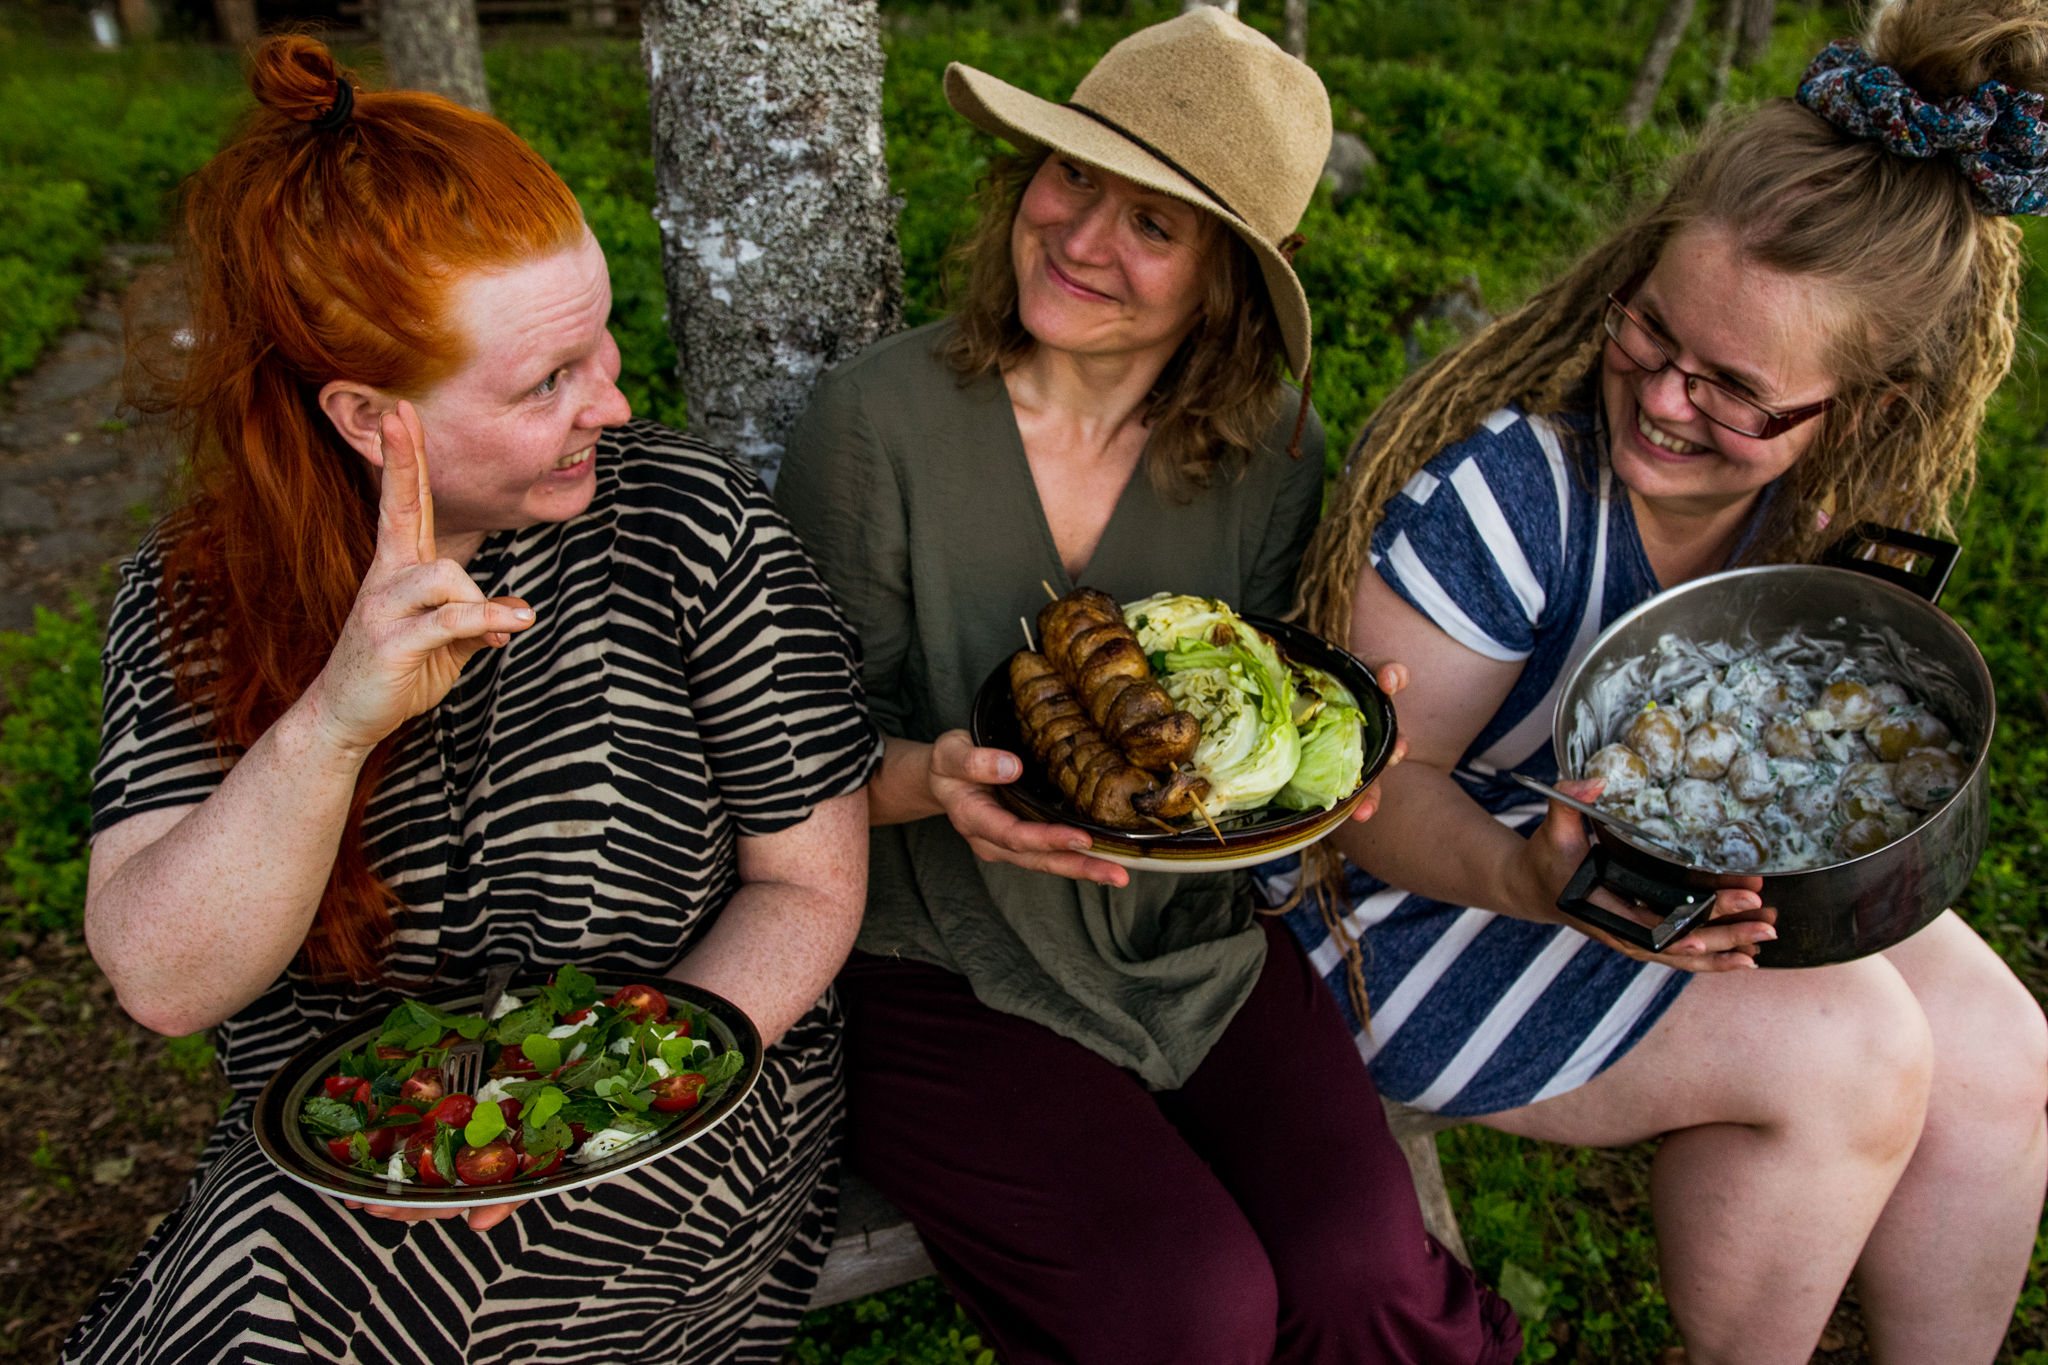 saimaalife ladies' summer recipe for grilled cabbage